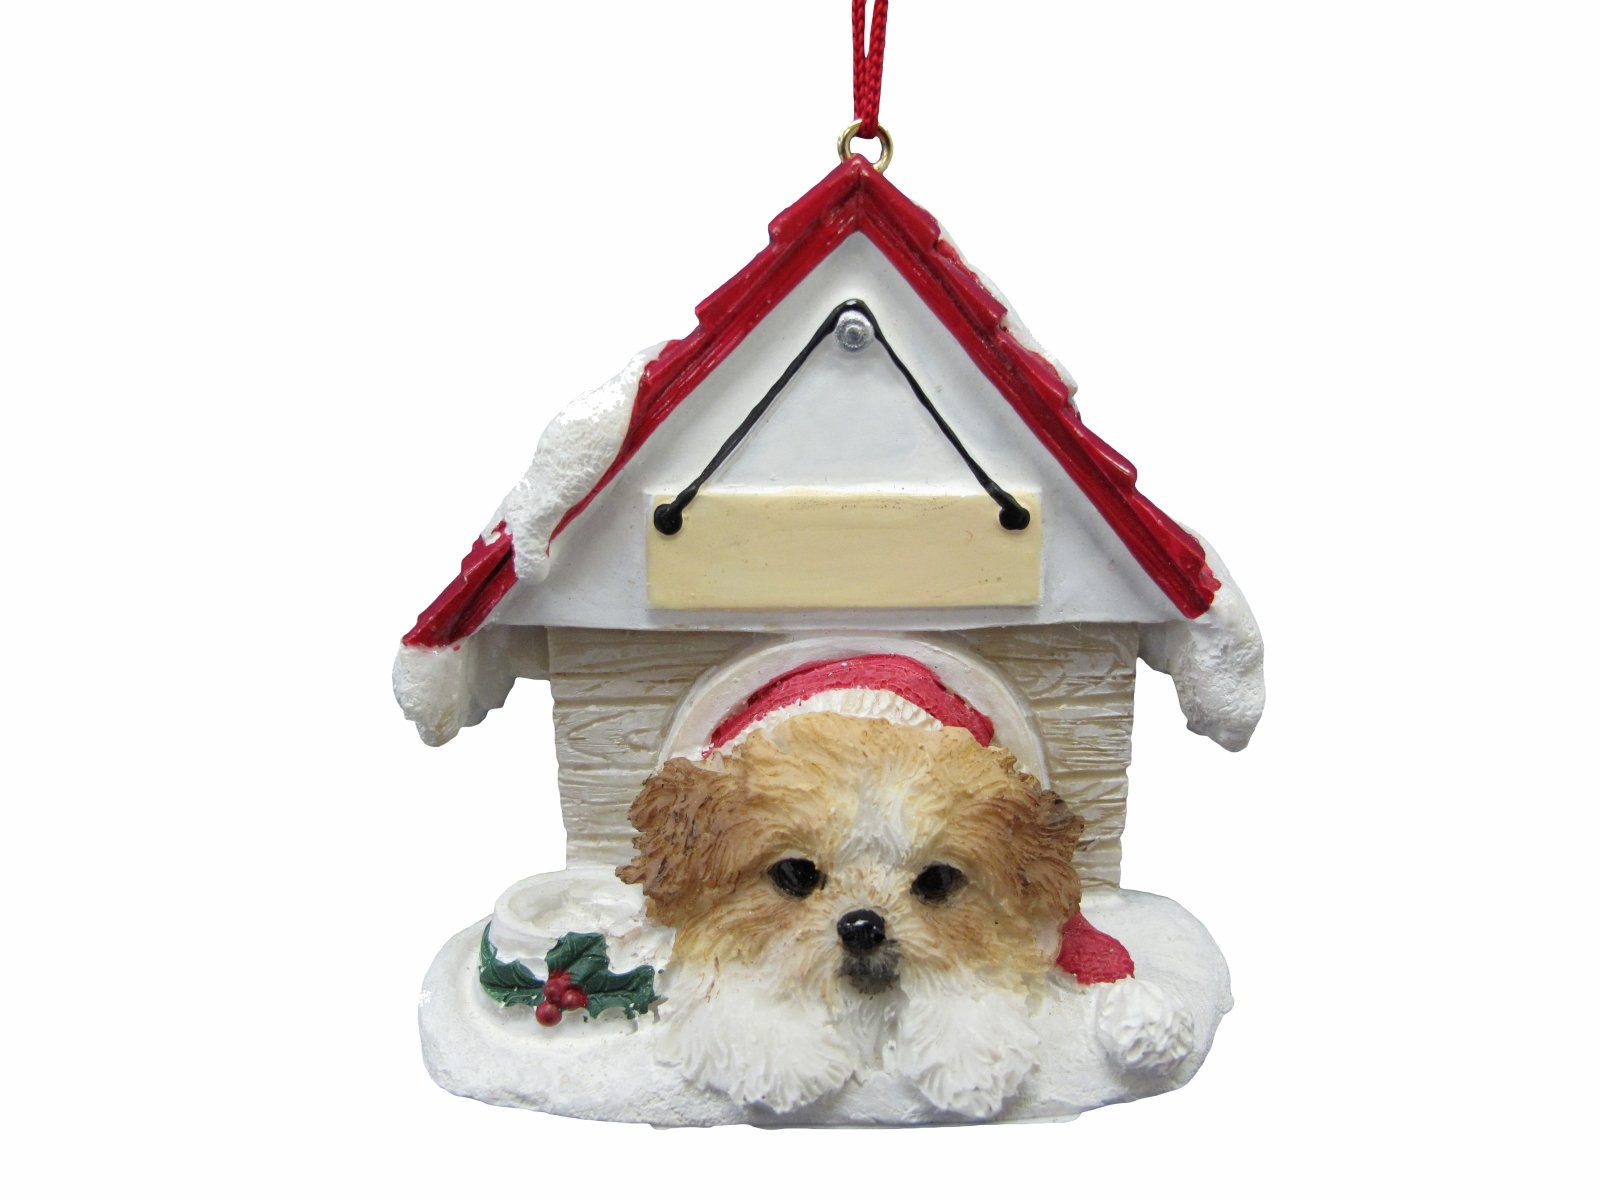 Shih-Tzu-Tan-White-Puppycut-Ornament-A-Great-Gift-For-Shih-Tzu-Tan-White-Puppycut-Owners-Hand-Painted-and-Easily-Personalized-Doghouse-Ornament-With-Magnetic-Back